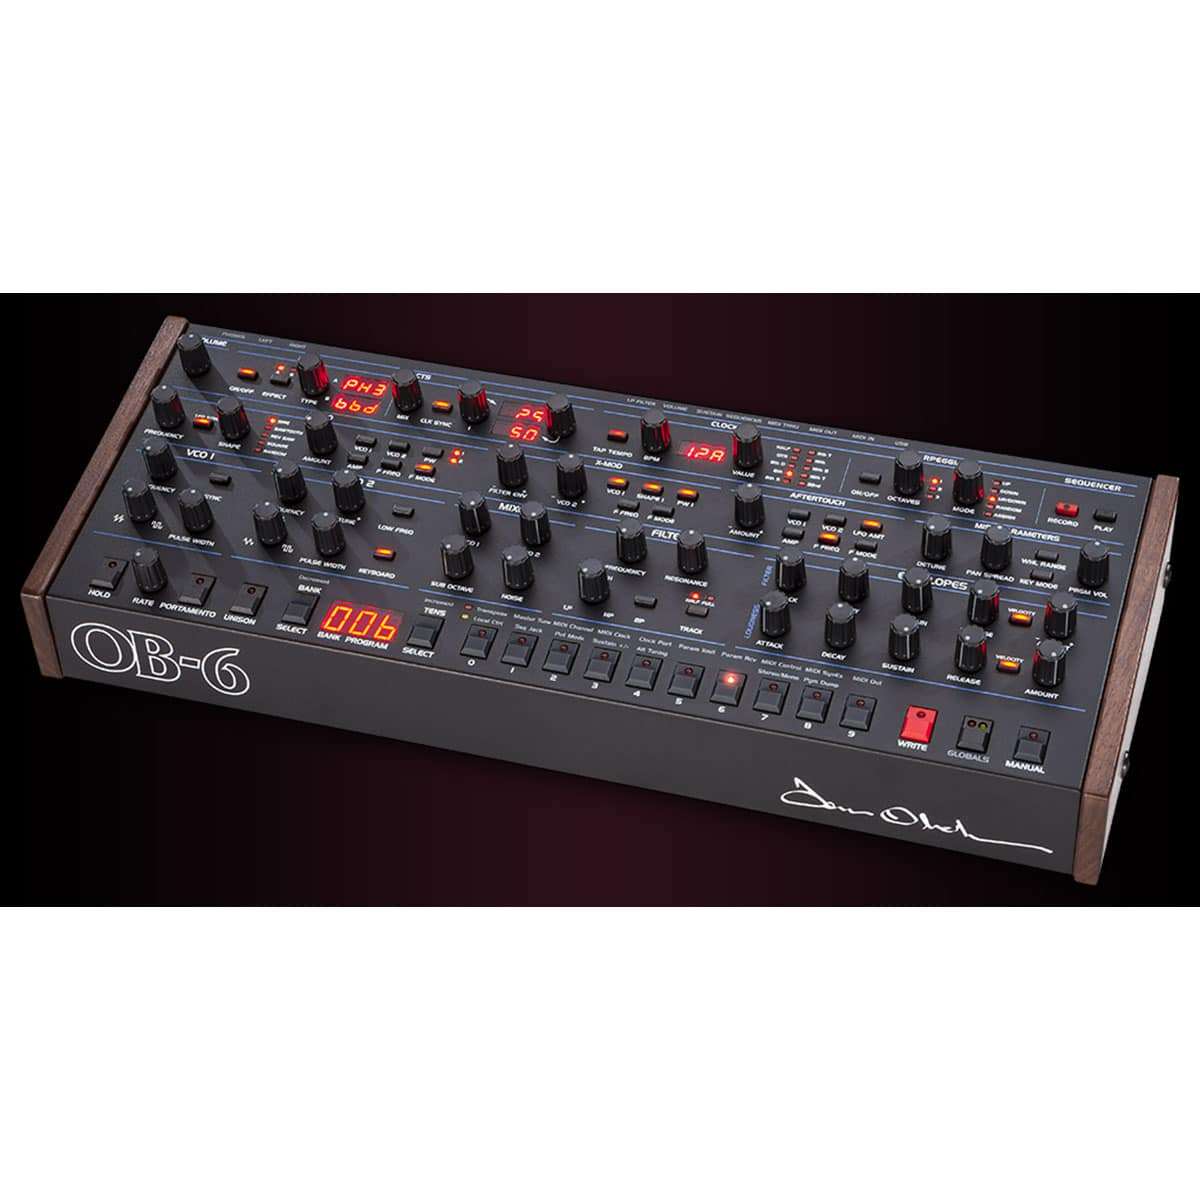 Dave Smith OB 6 Desktop Sintetizzatori e Drum Machine, Sintetizzatori e Tastiere, Synth Desktop Dave Smith OB 6 04